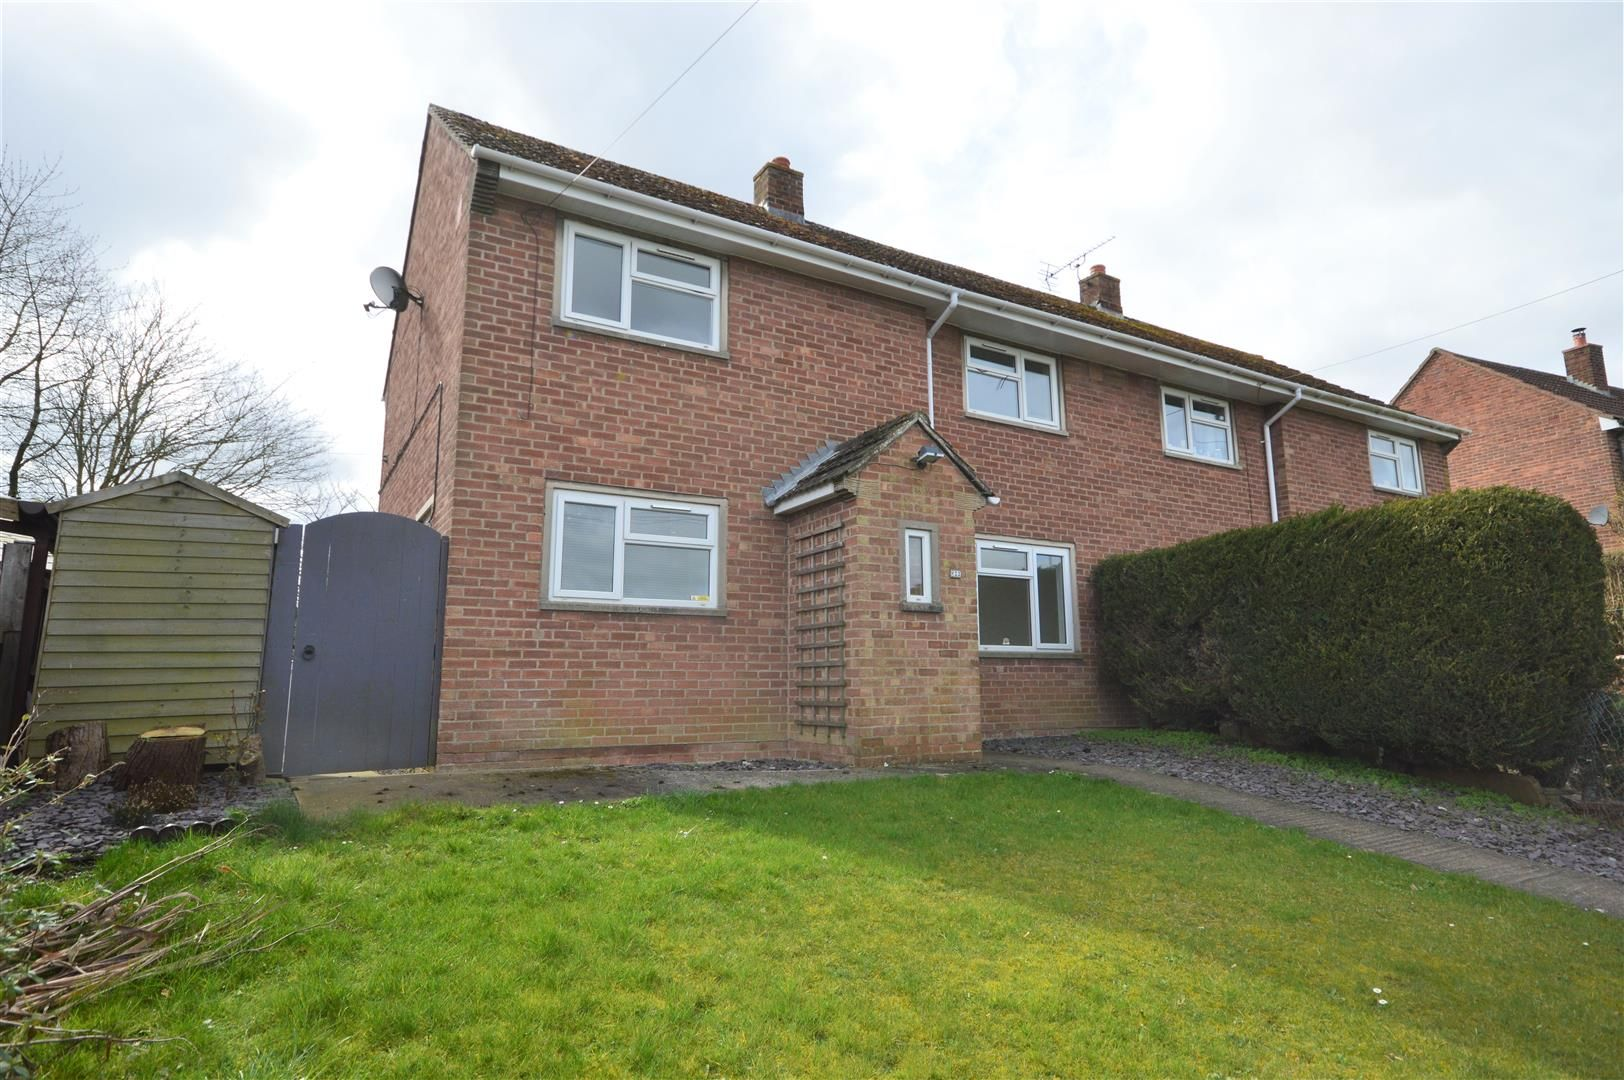 3 bed semi-detached for sale in Wigmore, HR6